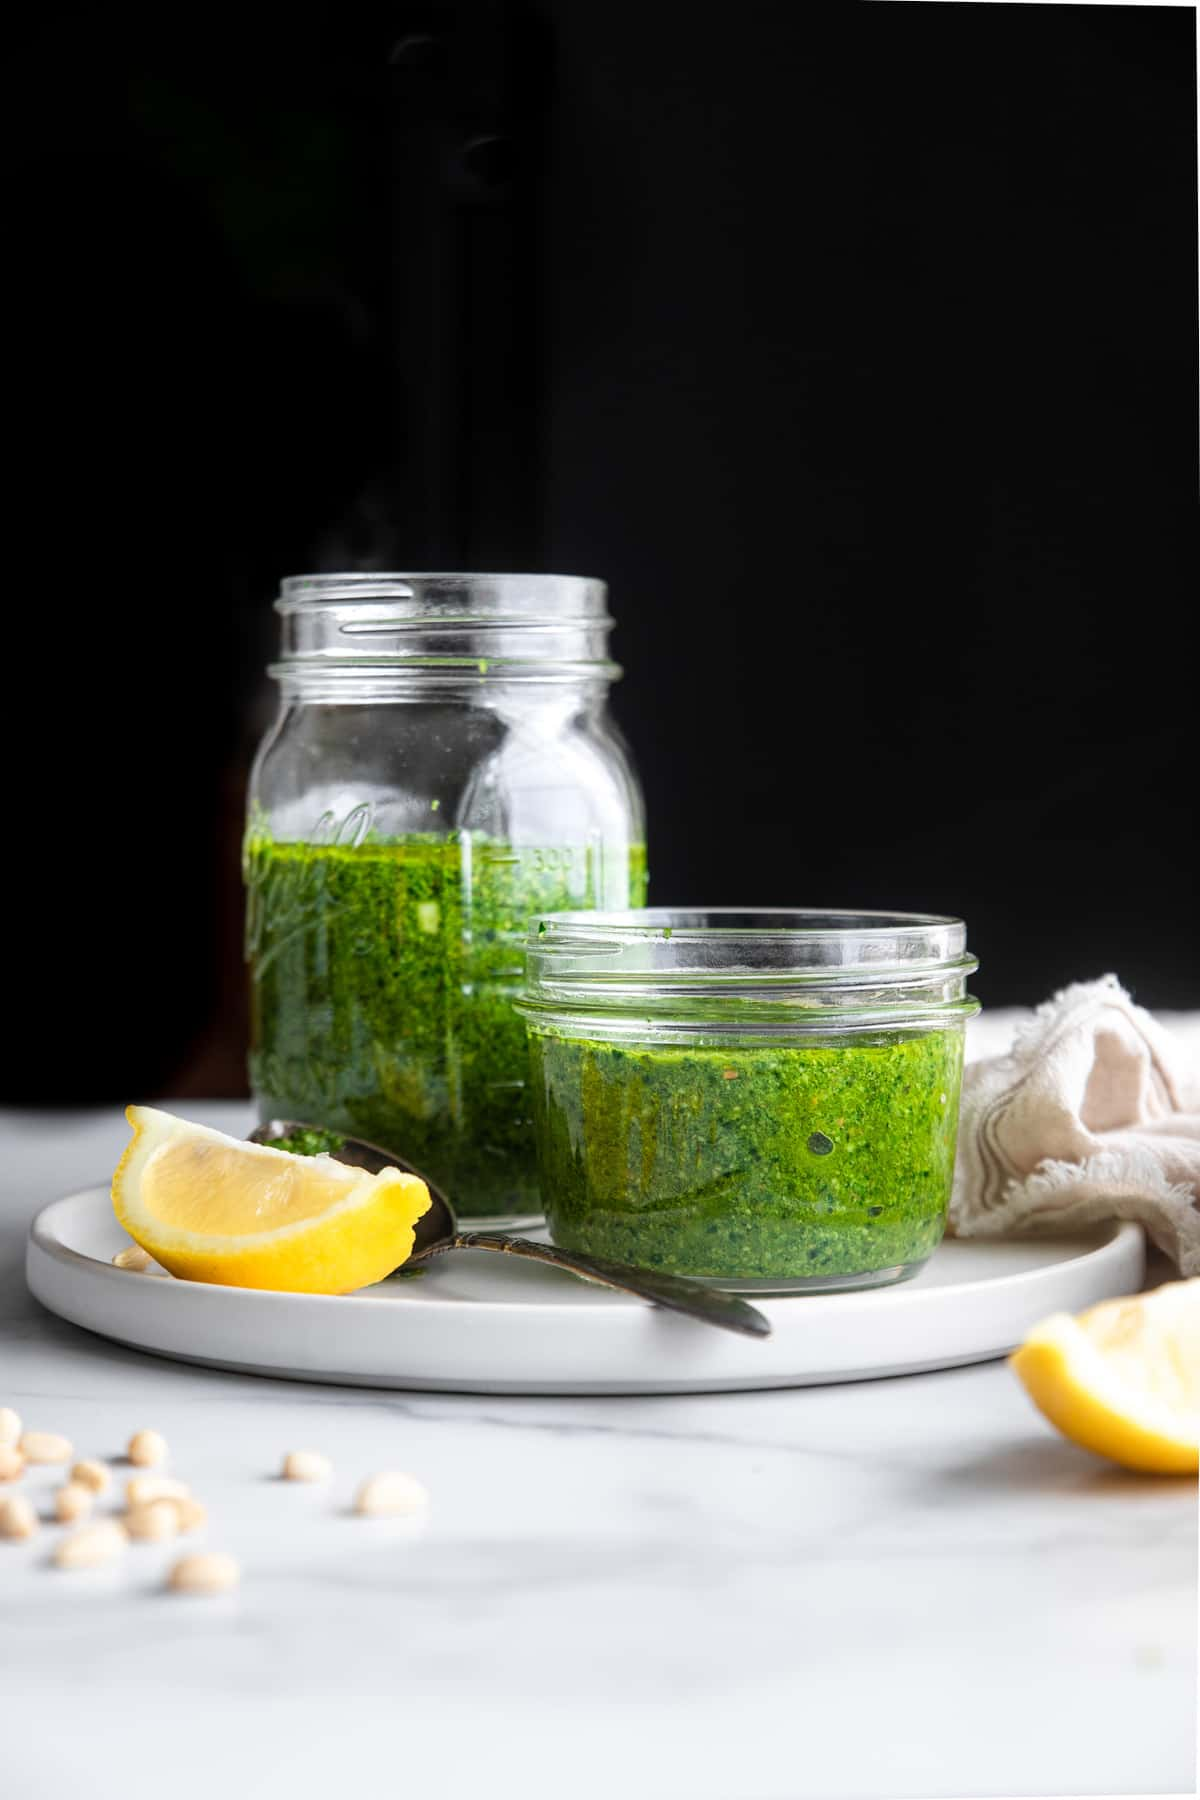 spinach pesto on a serving plate with lemon